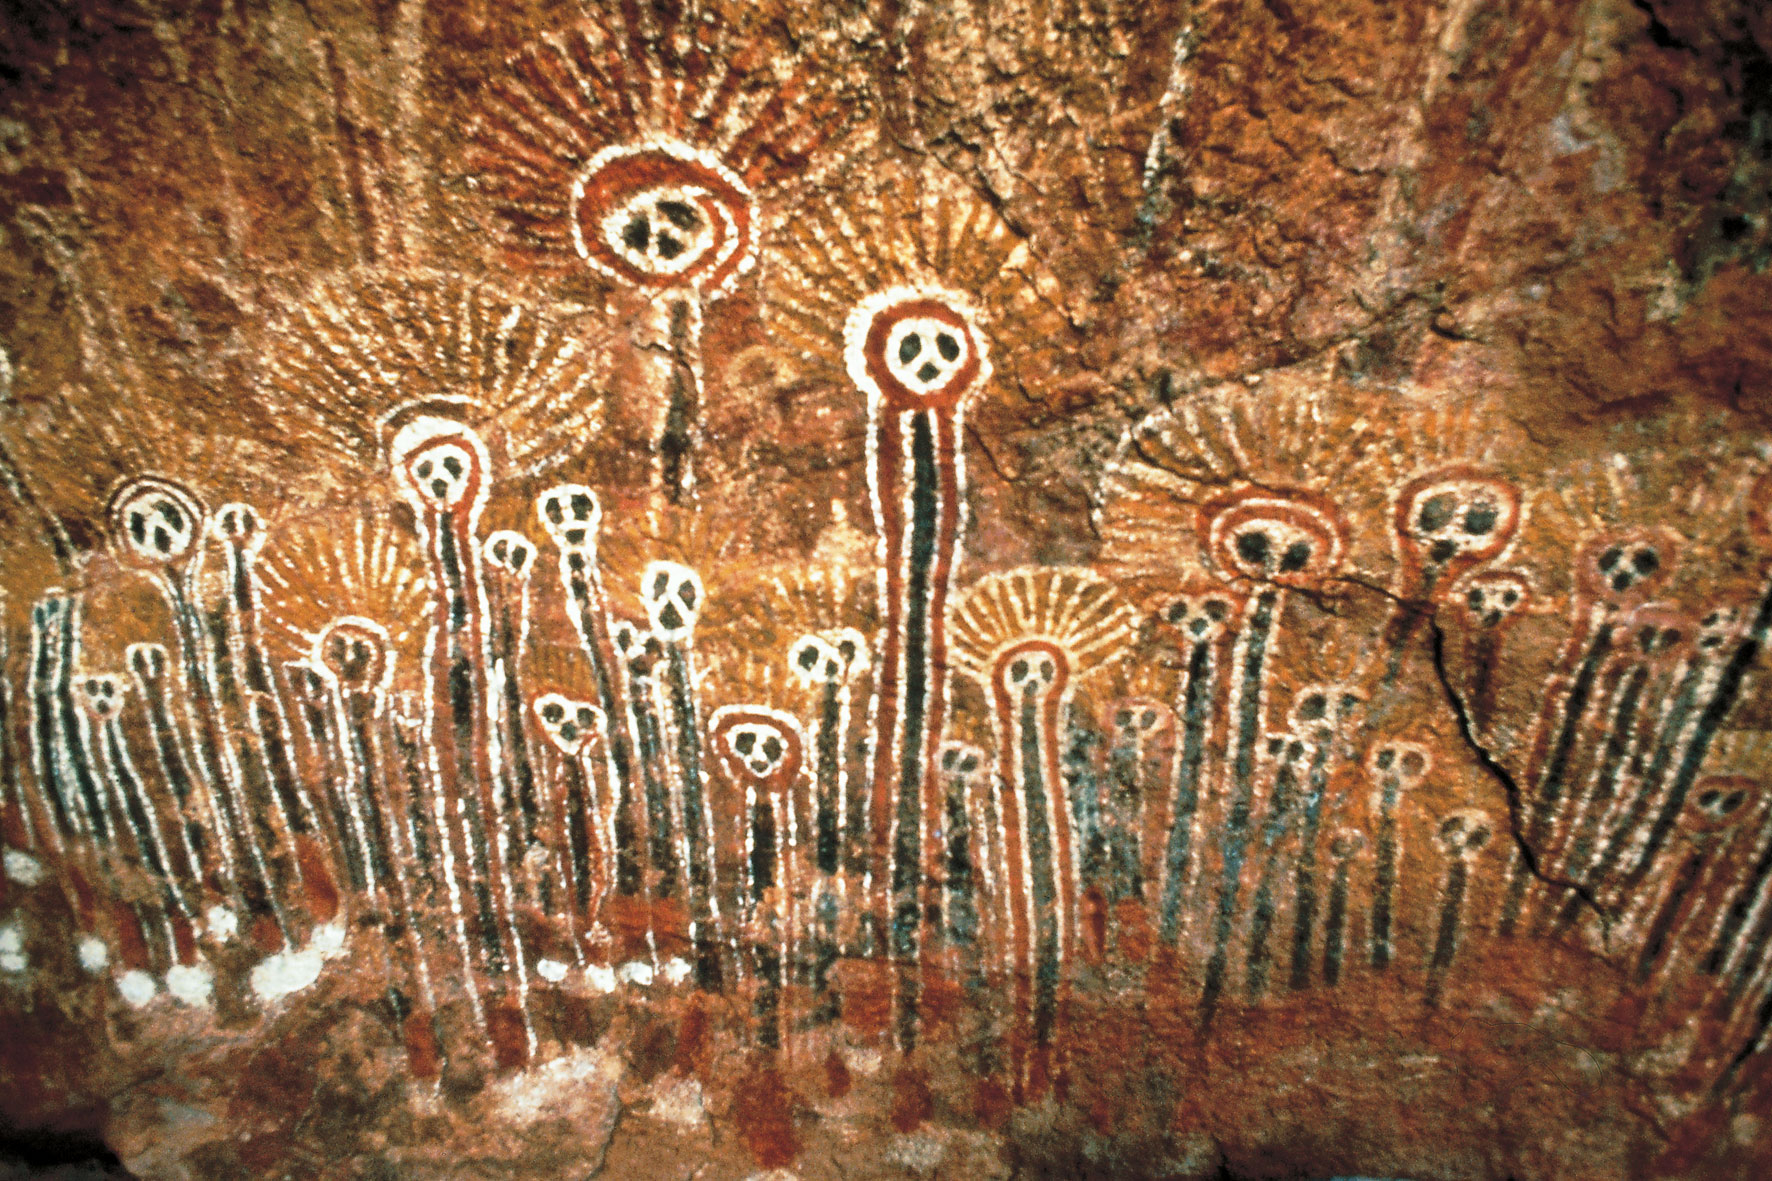 Outback Safari | Nourlangie Rock Art, Kakadu National Park, Top End, Northern Territory